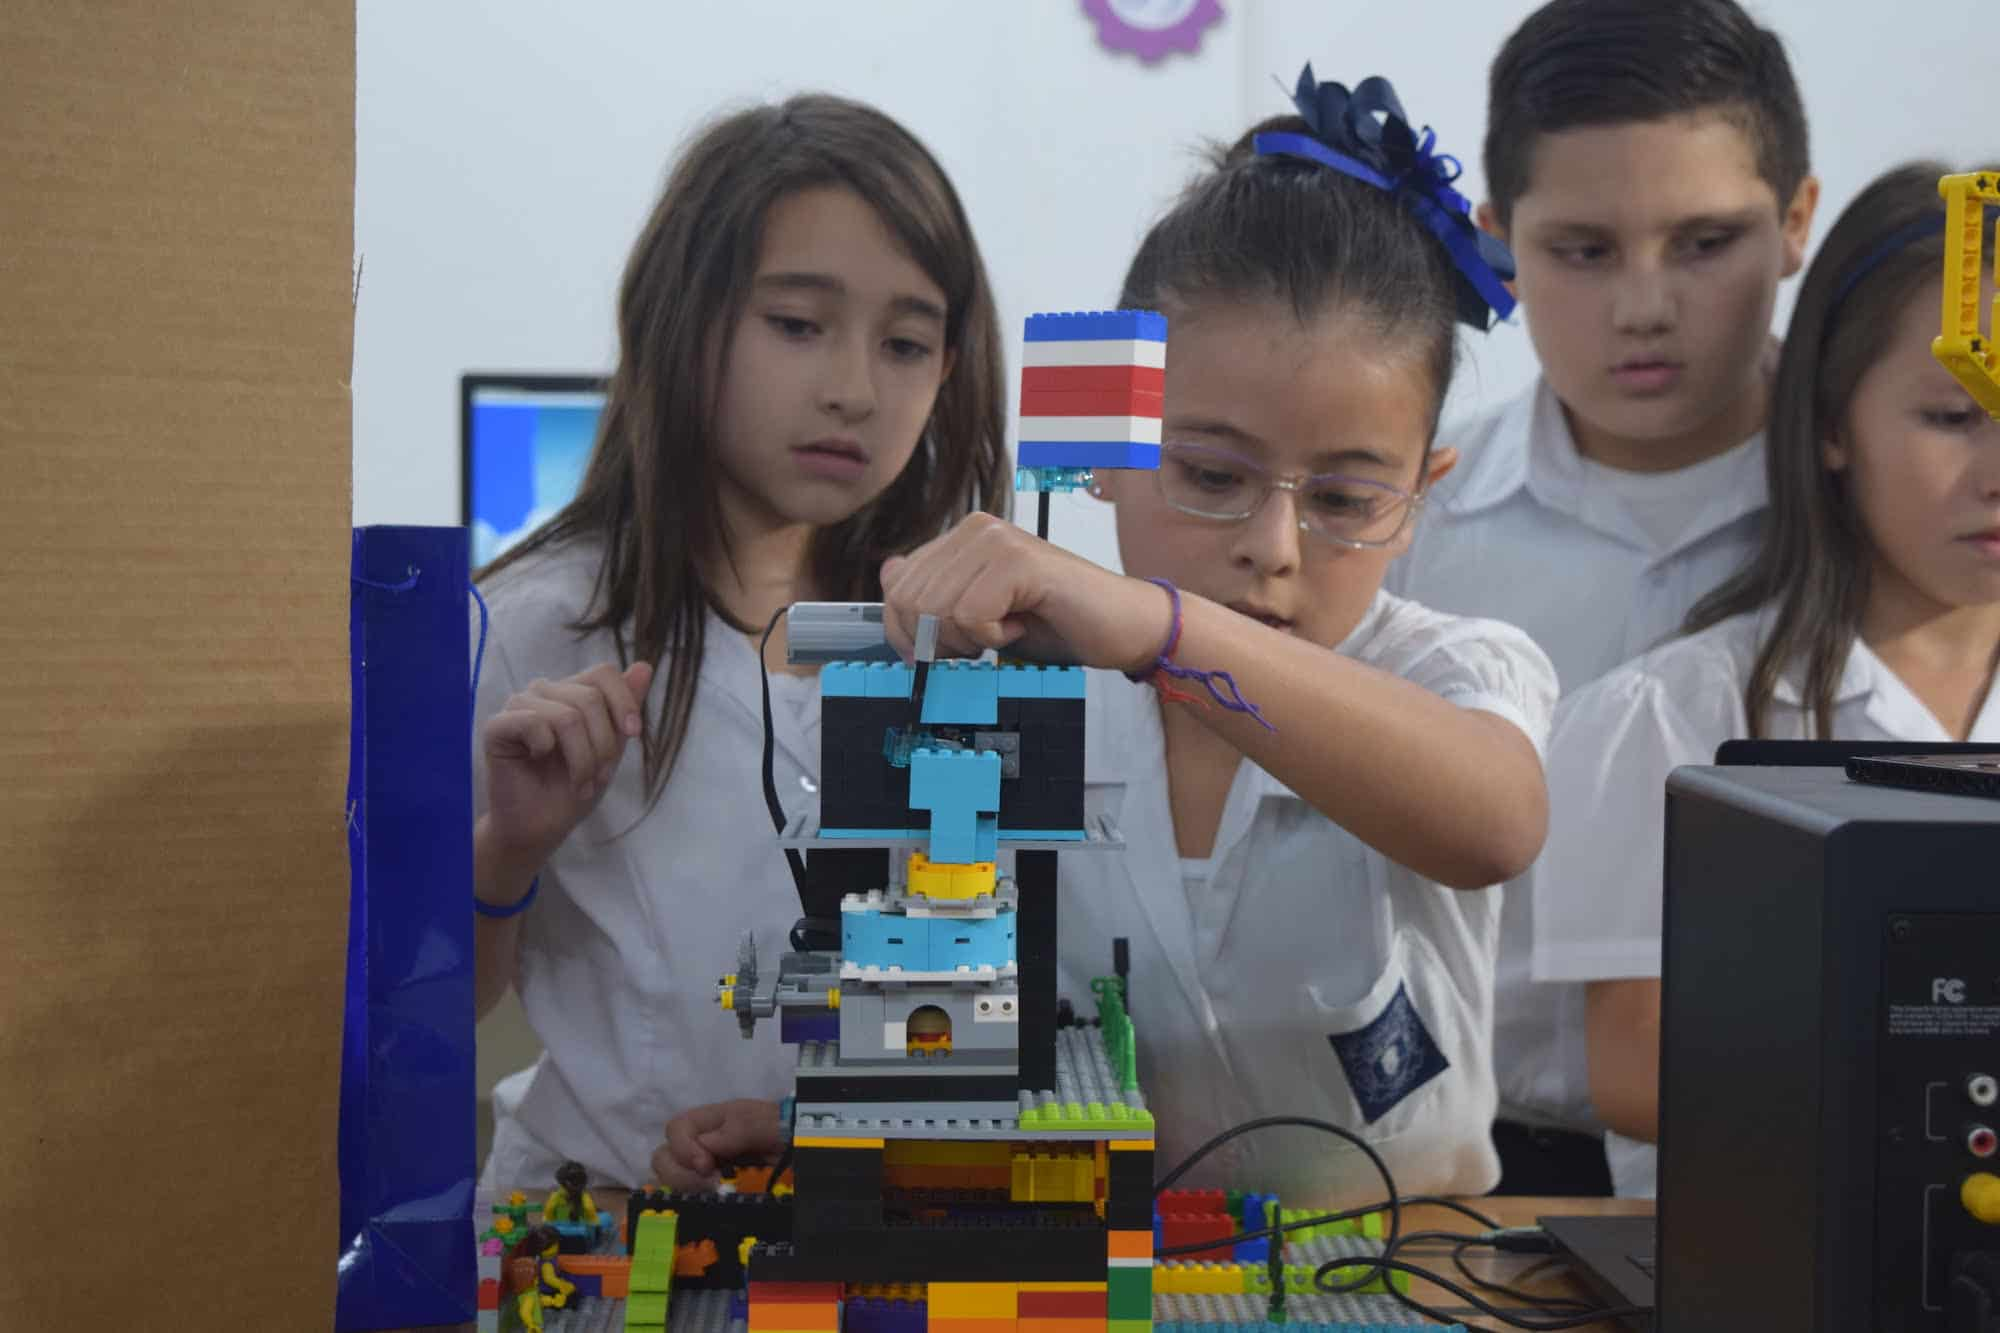 Six third-graders from Costa Rica will represent the country at an international technology championship in Houston, Texas.